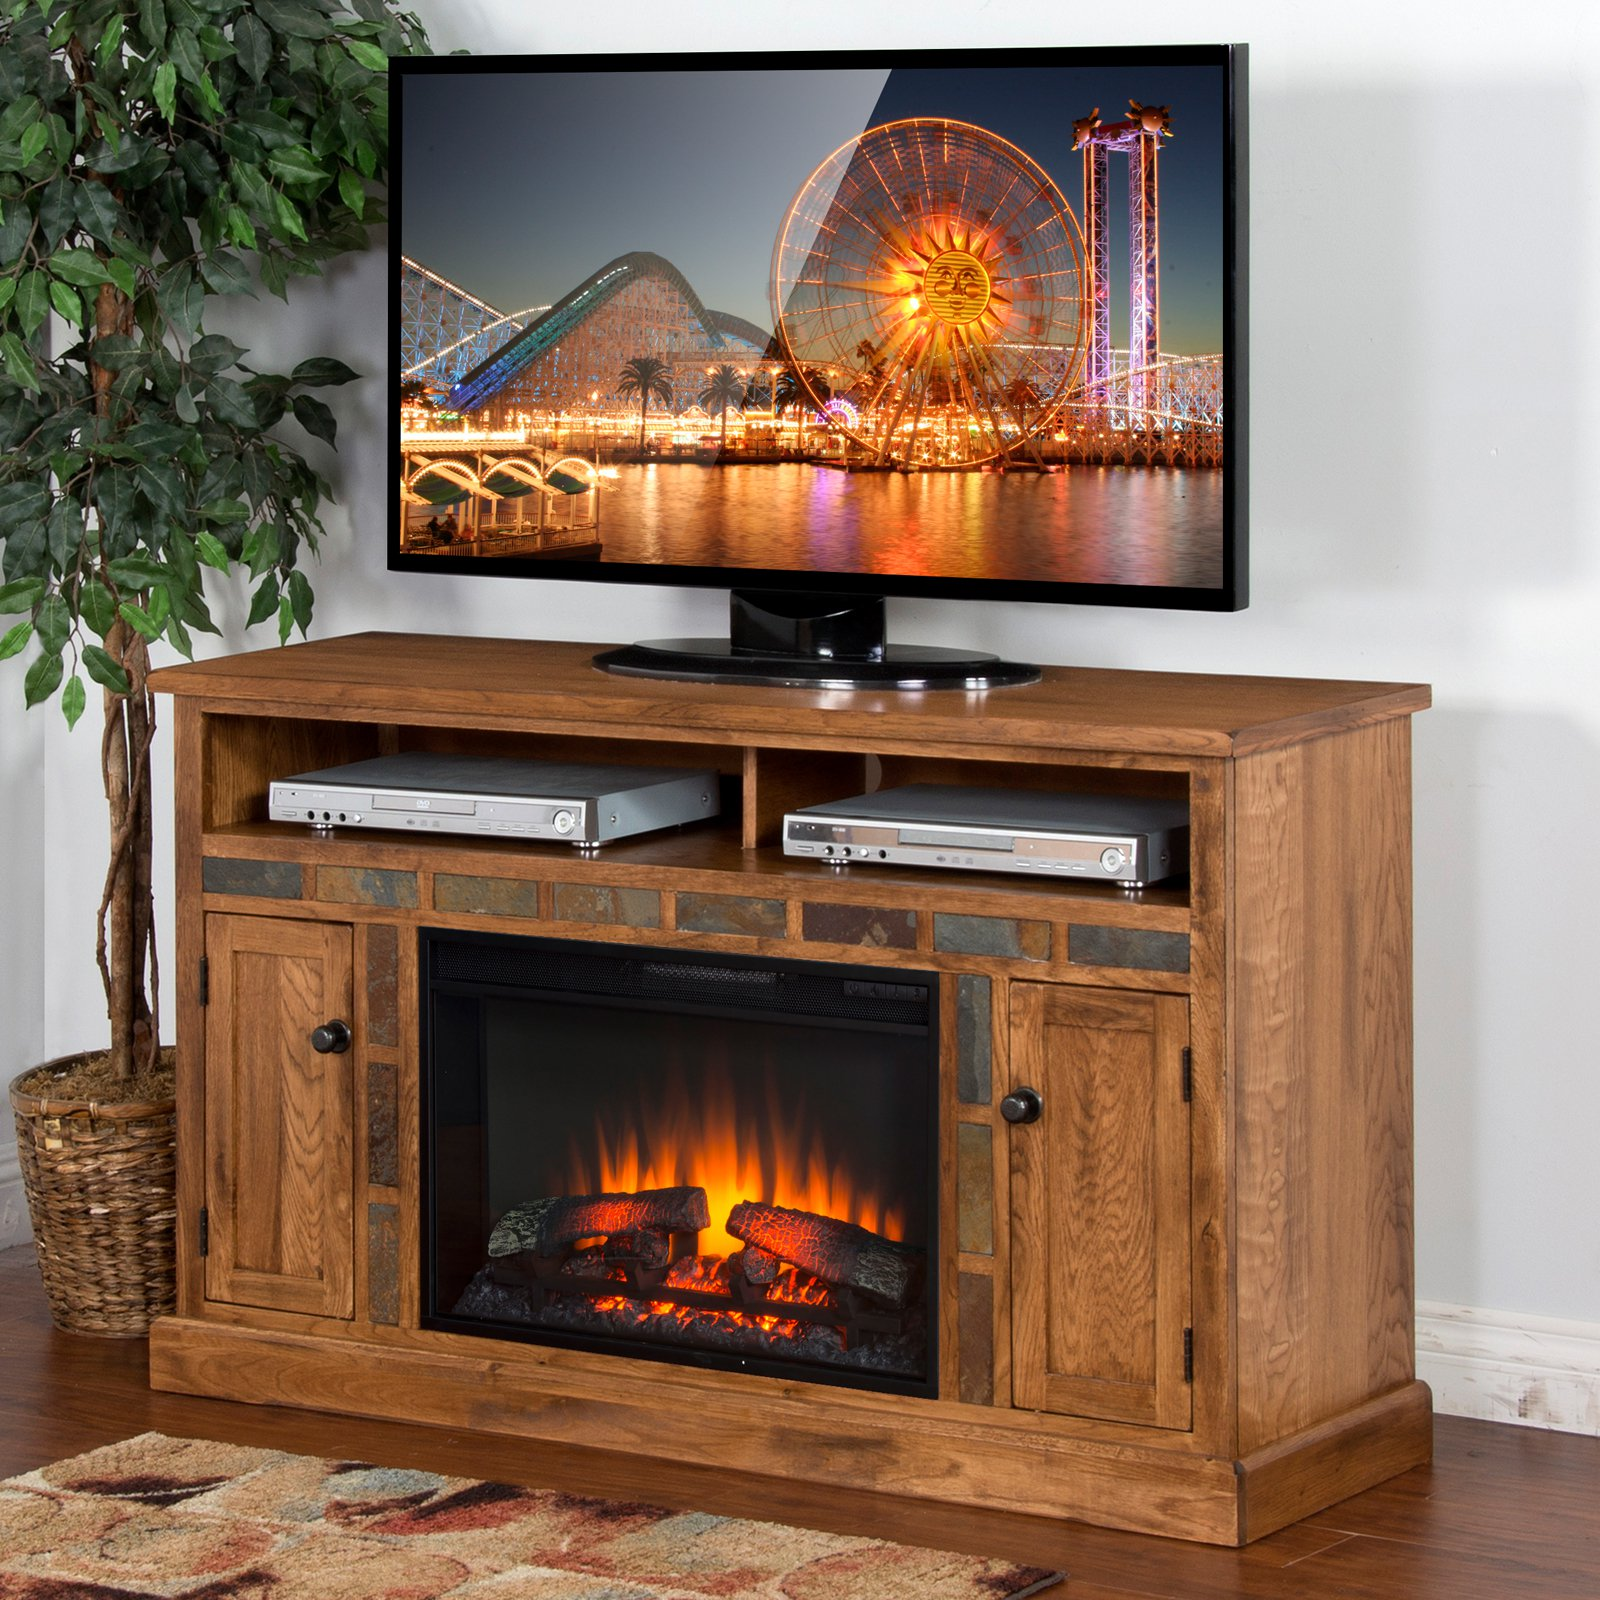 Sunny Designs Sedona 54 in. Electric Fireplace Media Console